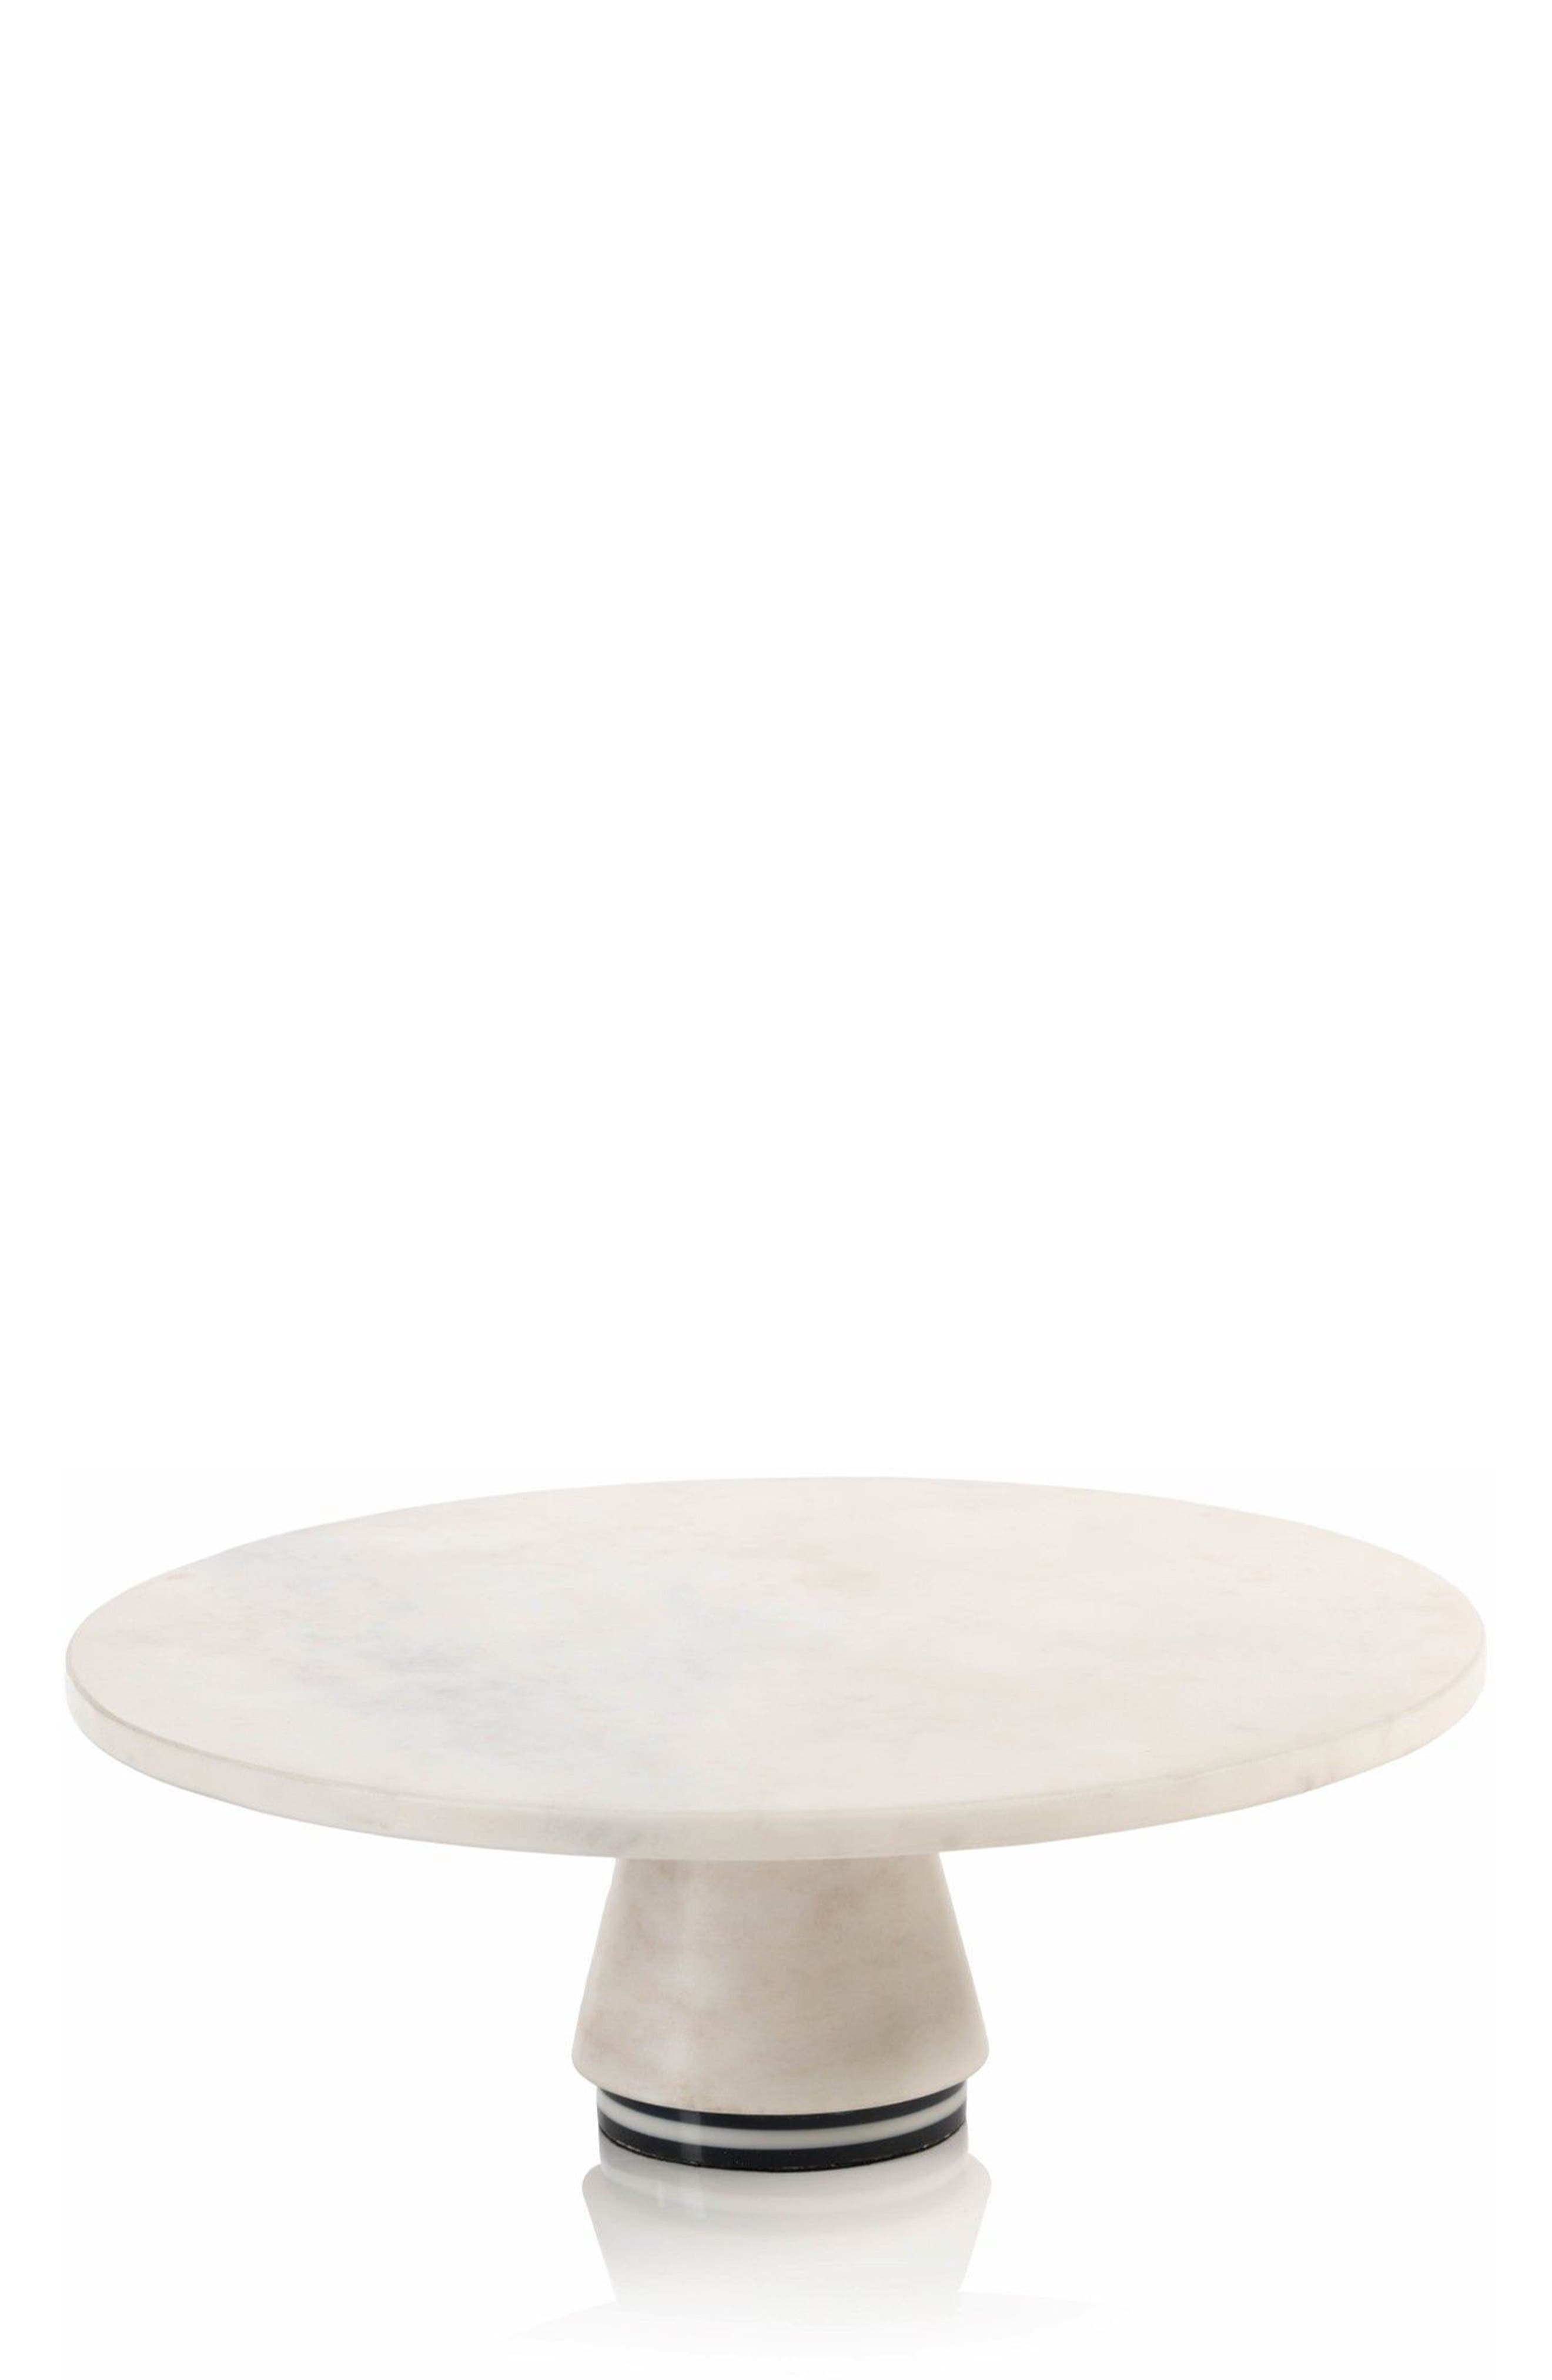 Marine Marble Cake Stand,                         Main,                         color, 100